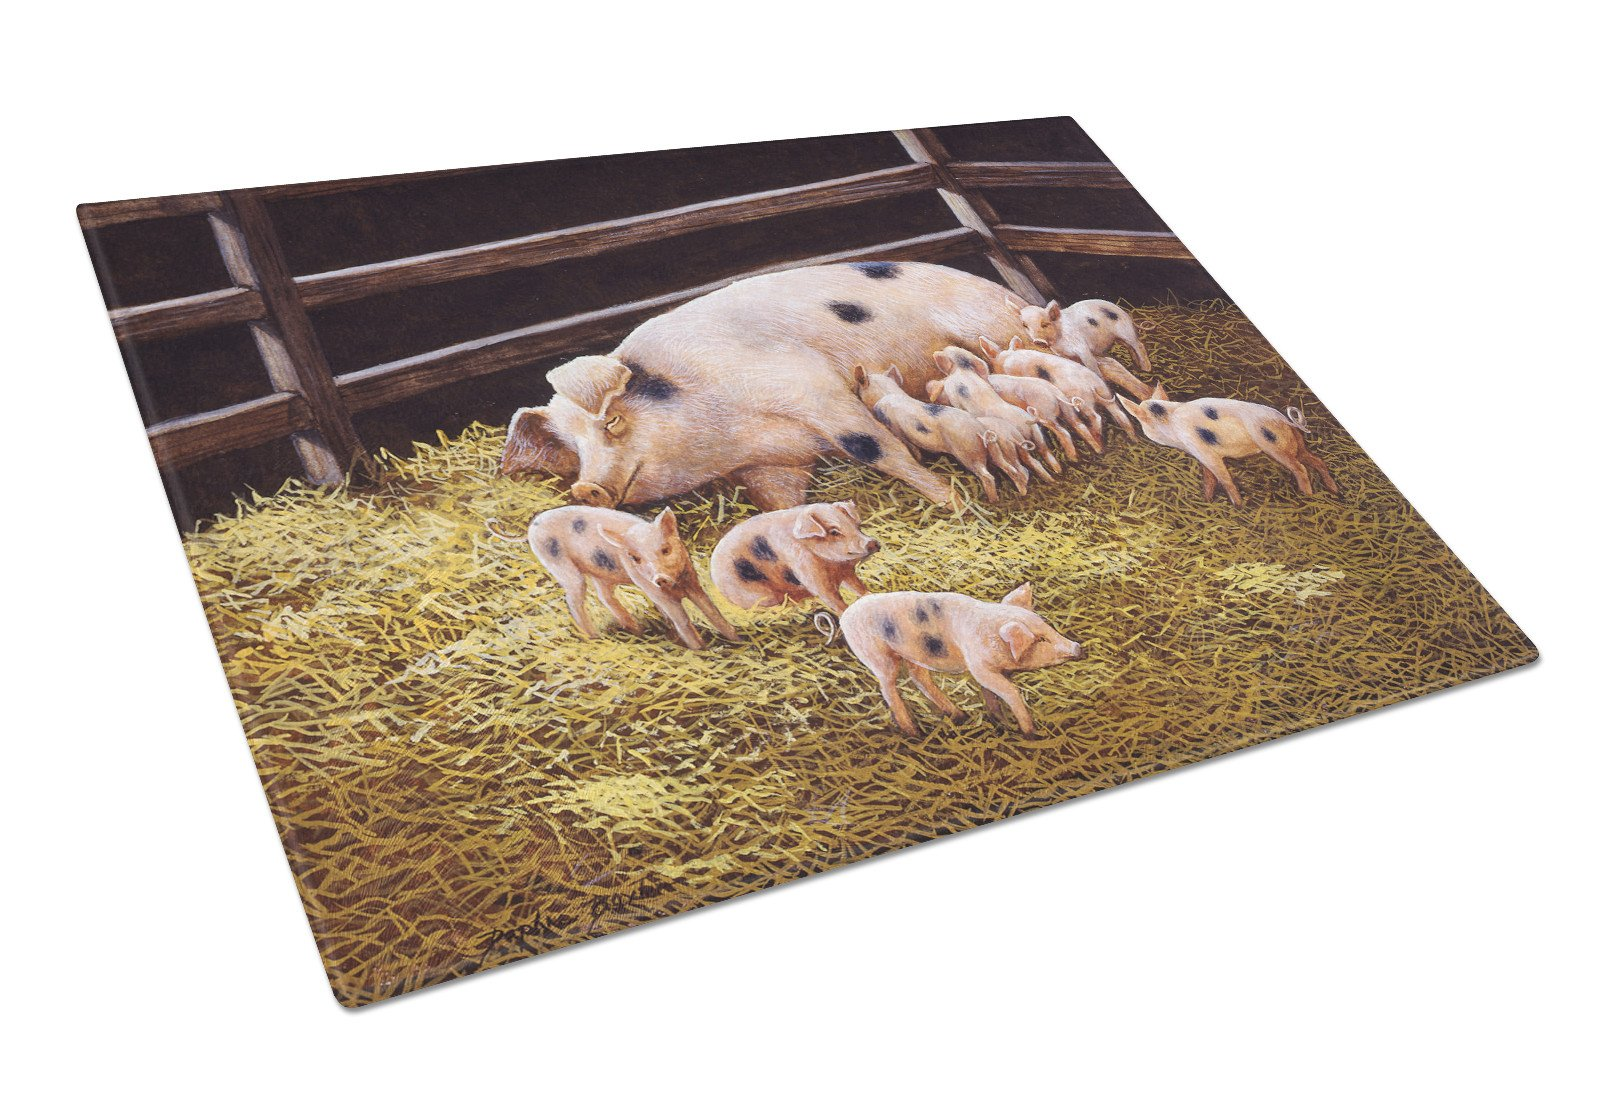 Pigs Piglets at Dinner Time Glass Cutting Board Large BDBA0296LCB by Caroline's Treasures